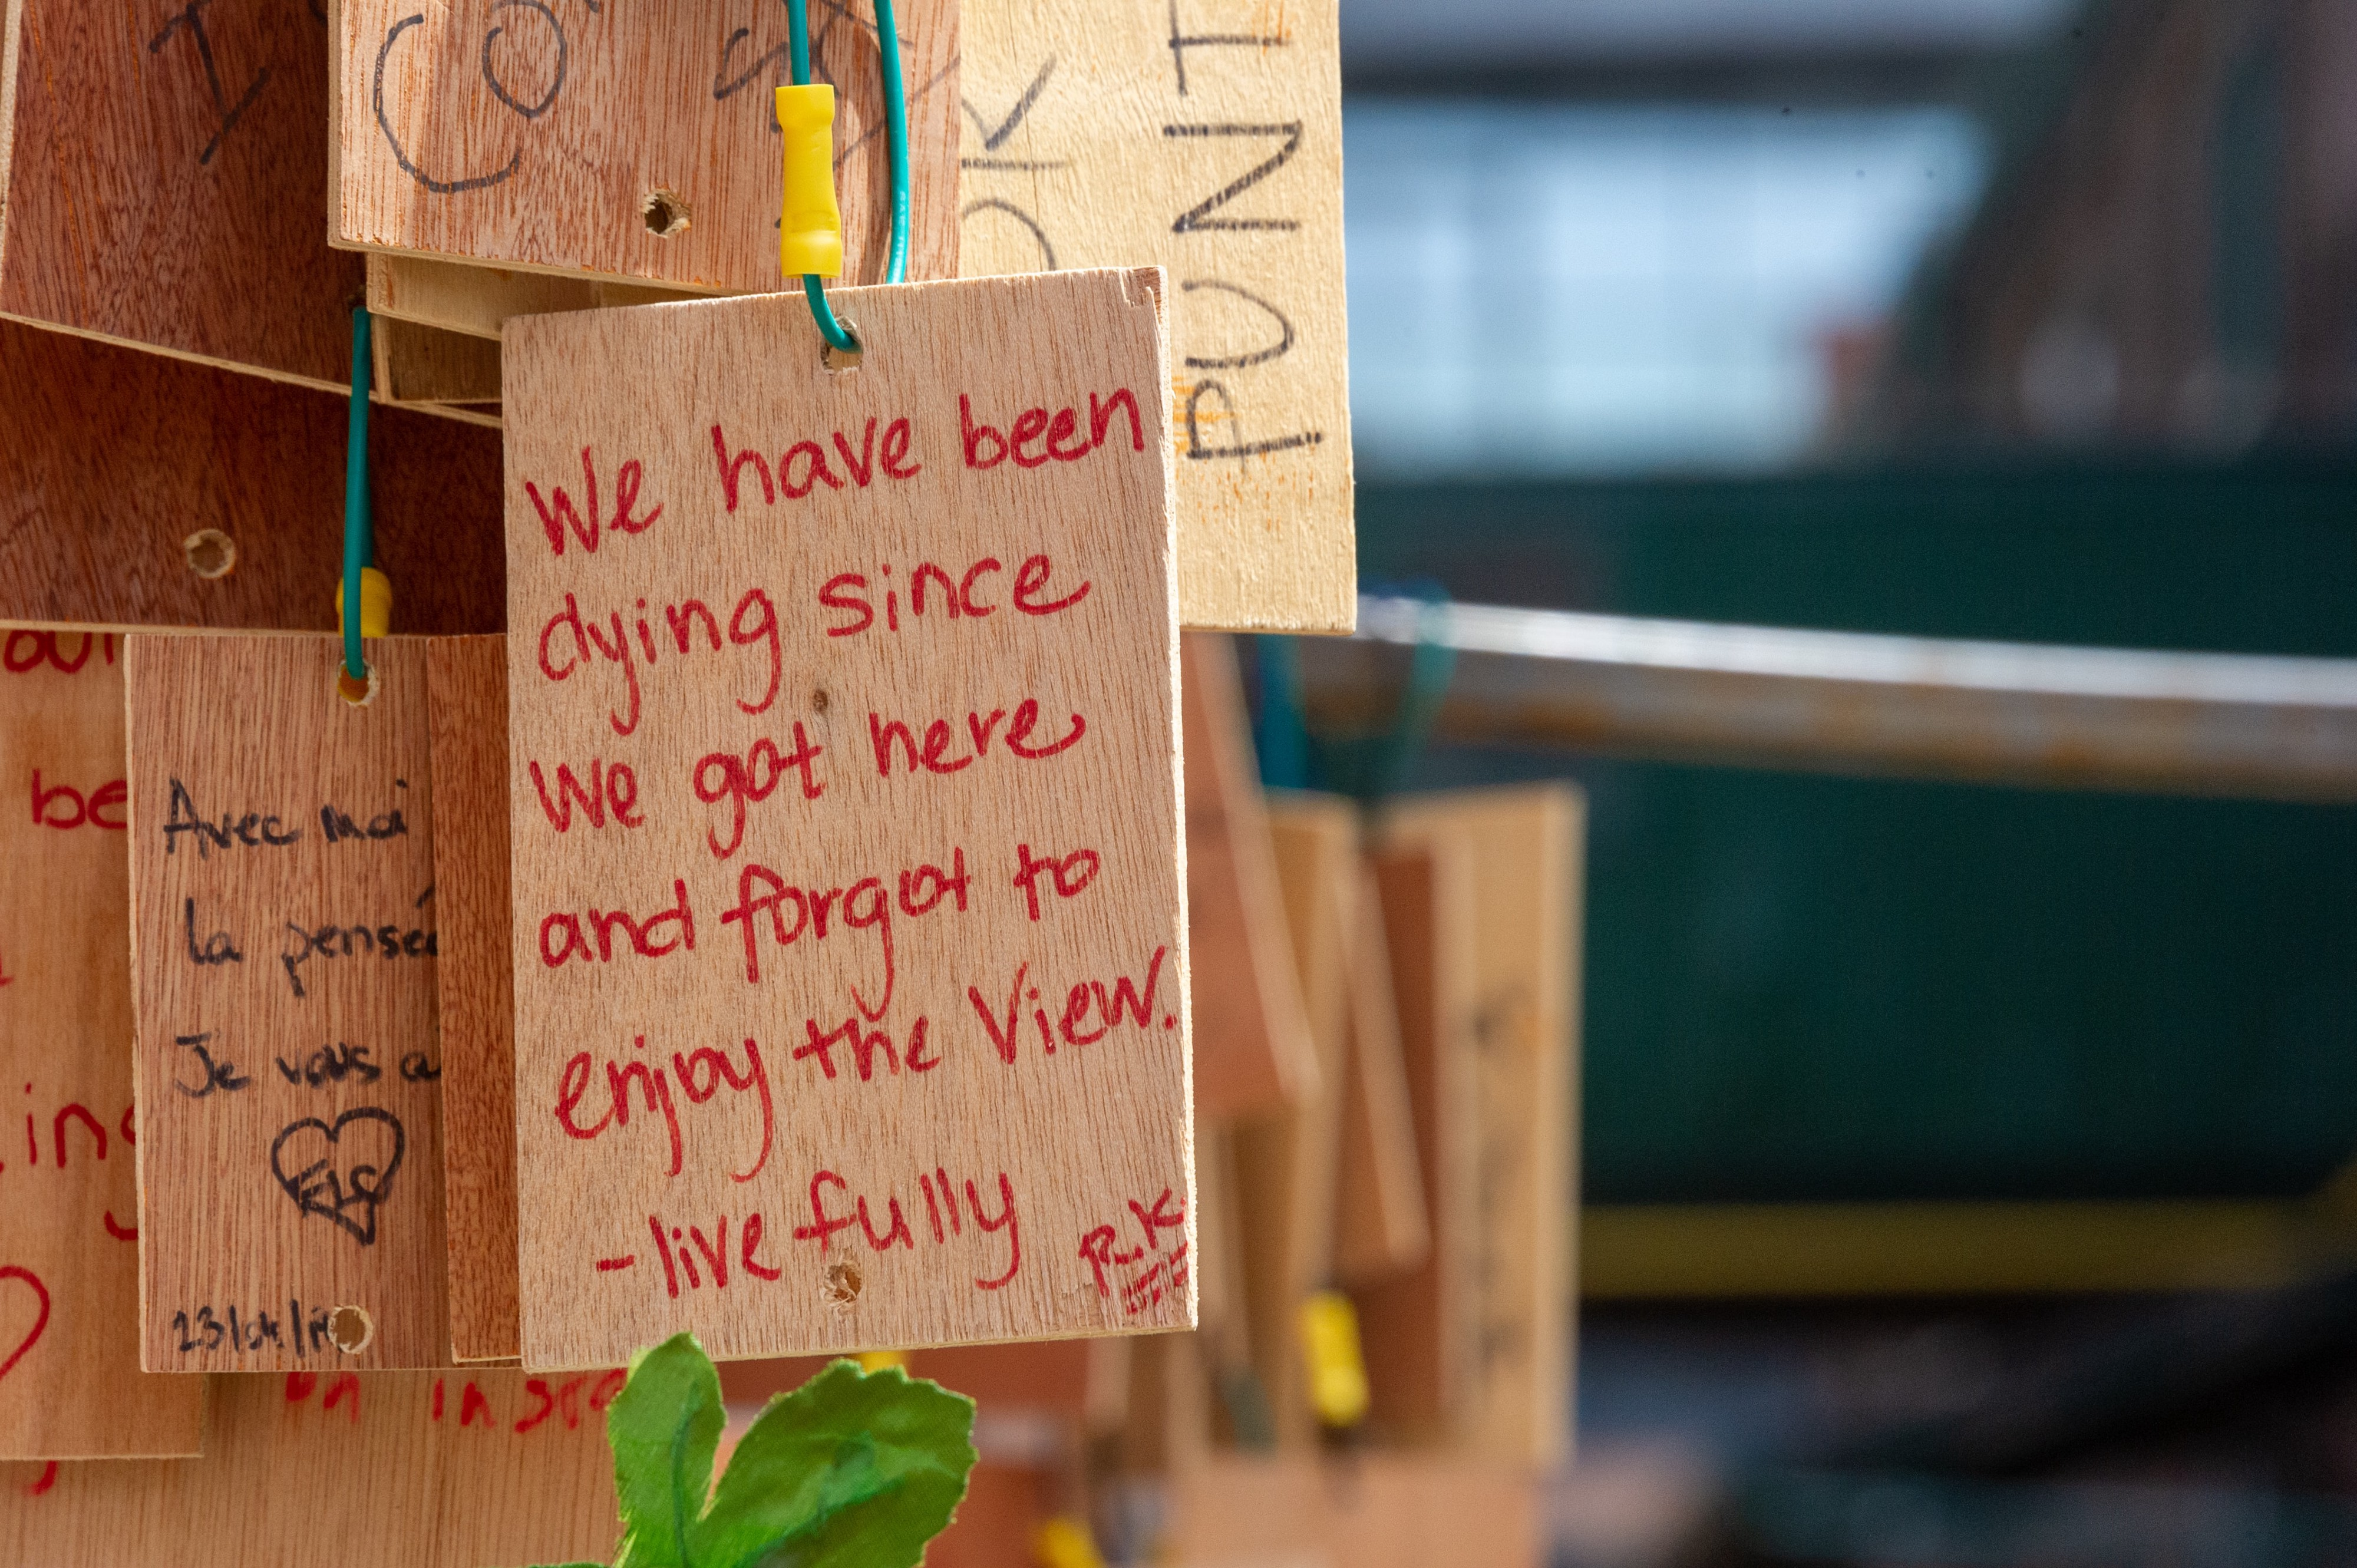 Handwritten sign on a wood tag amidst a cluster of wooden tags: We have been dying since We got here and forgot to enjoy the view. live fully.